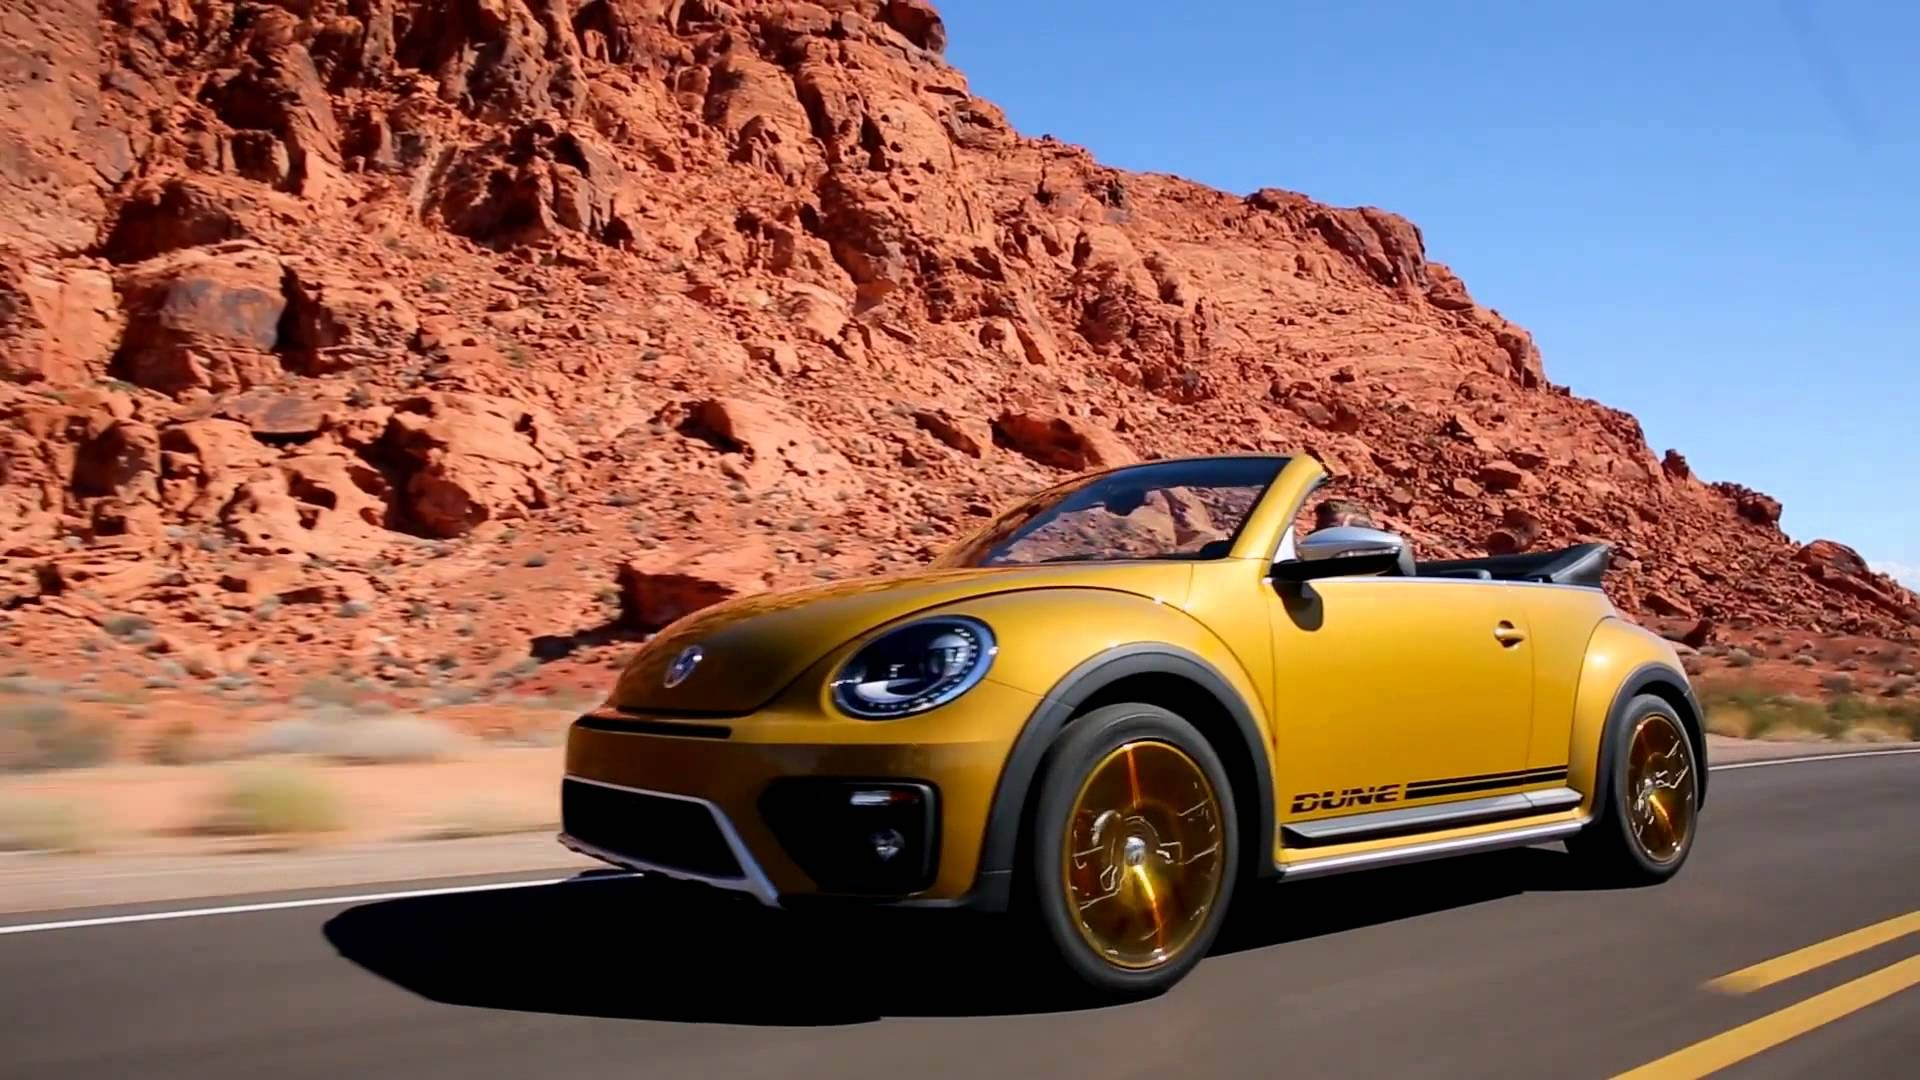 Stunning Yellow And Brown Volkswagen Beetle Dune Convertible 2016 Interior Color Row Hq Wallpaper 36